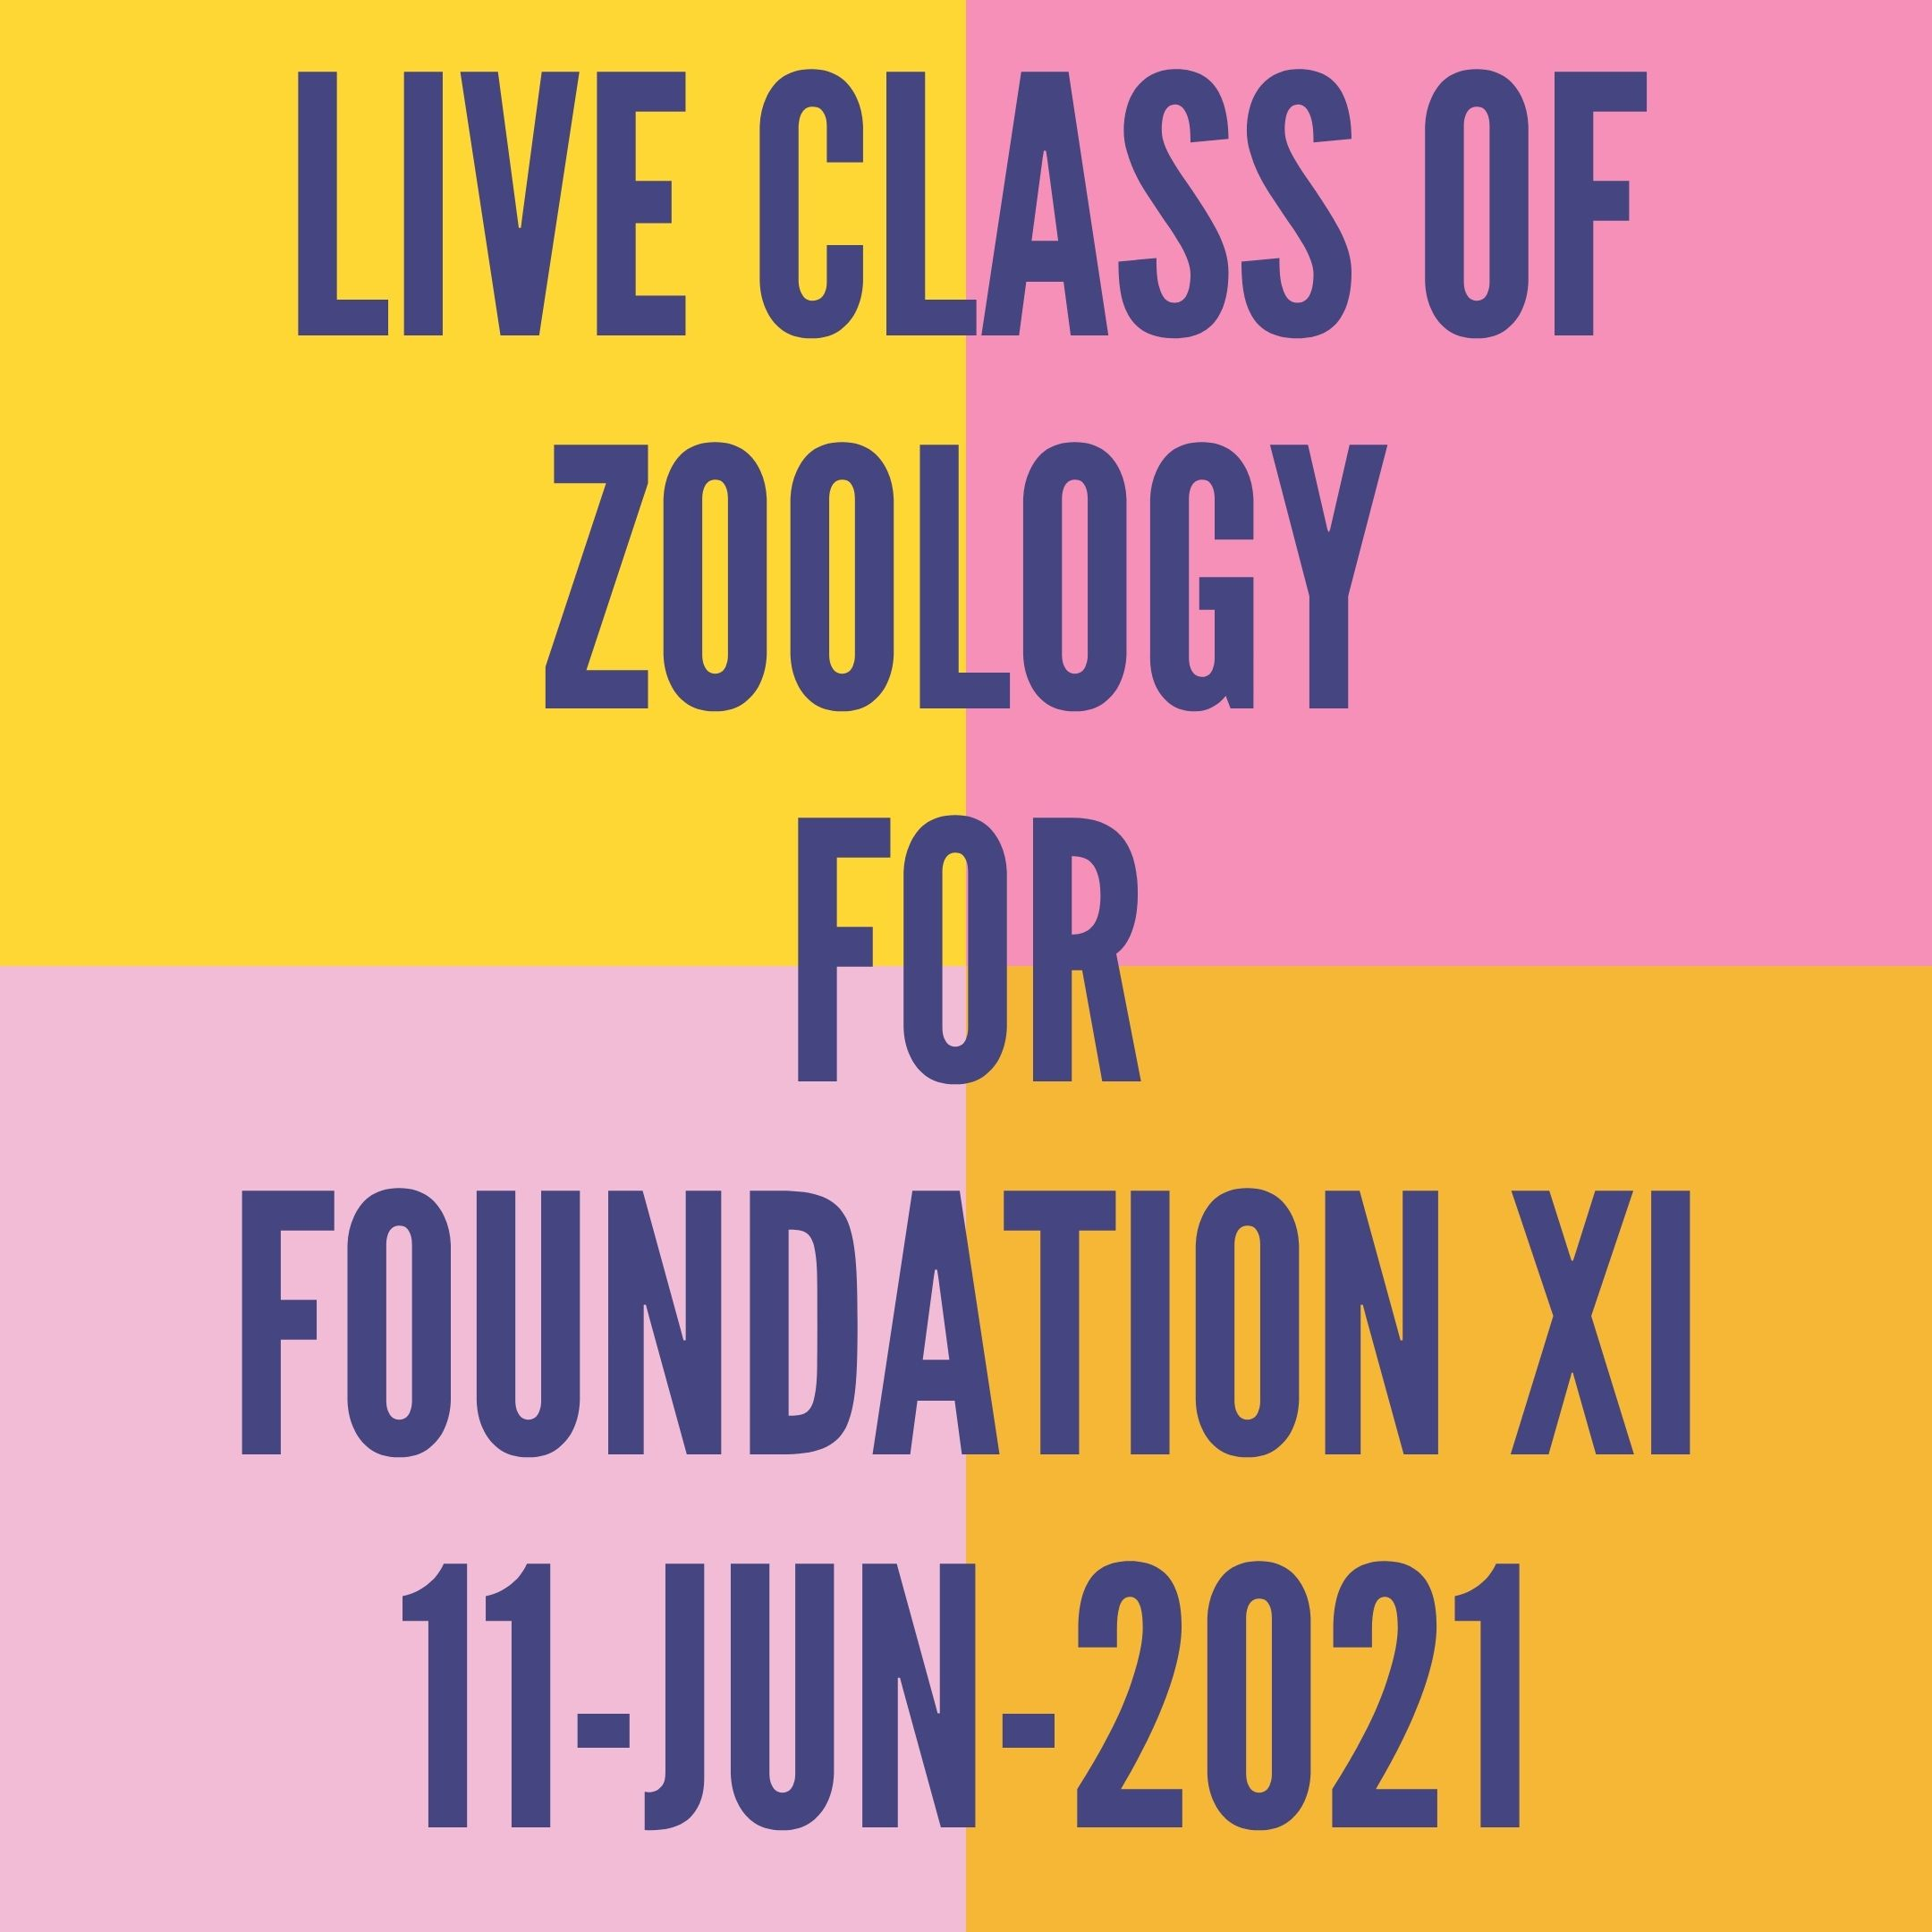 LIVE CLASS OF ZOOLOGY FOR FOUNDATION XI (11-JUN-2021) DIGESTIVE SYSTEM